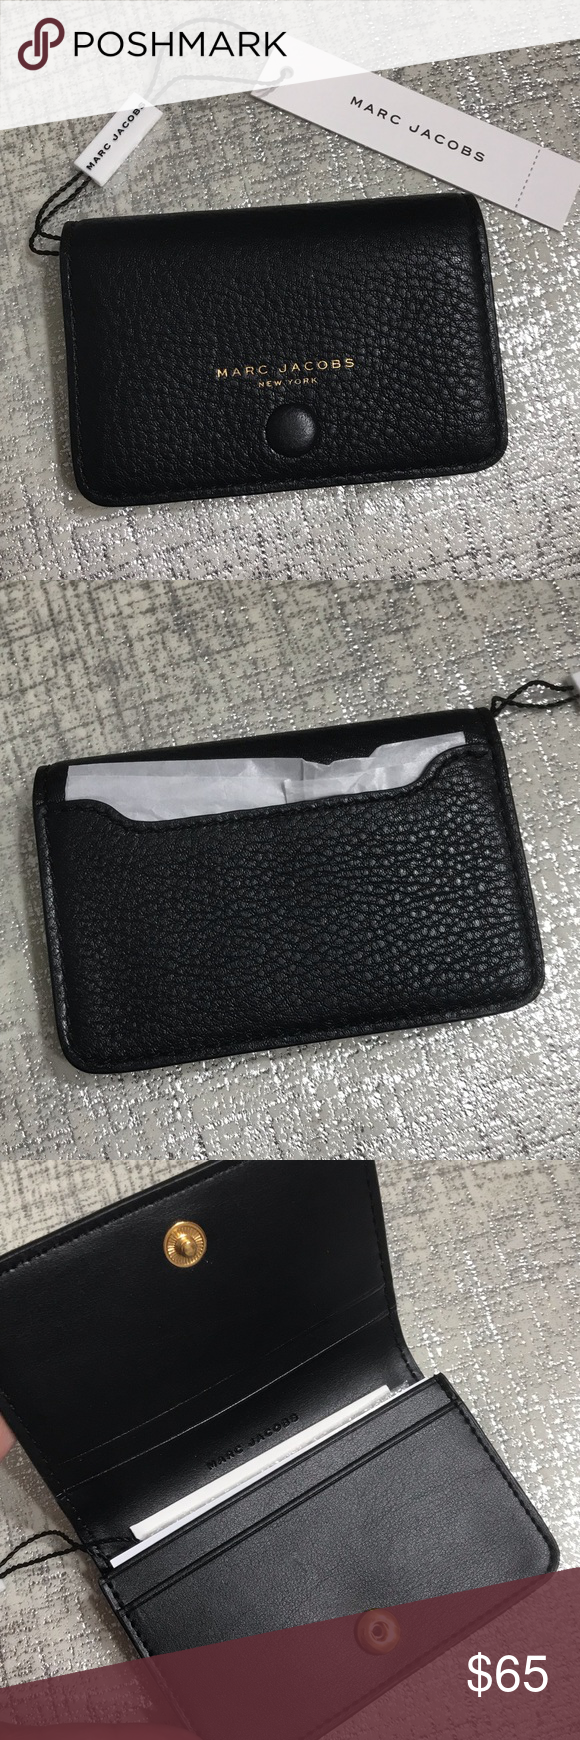 Nwt Marc Jacobs Empire City Business Card Case Business Card Case Leather Card Case Marc Jacobs